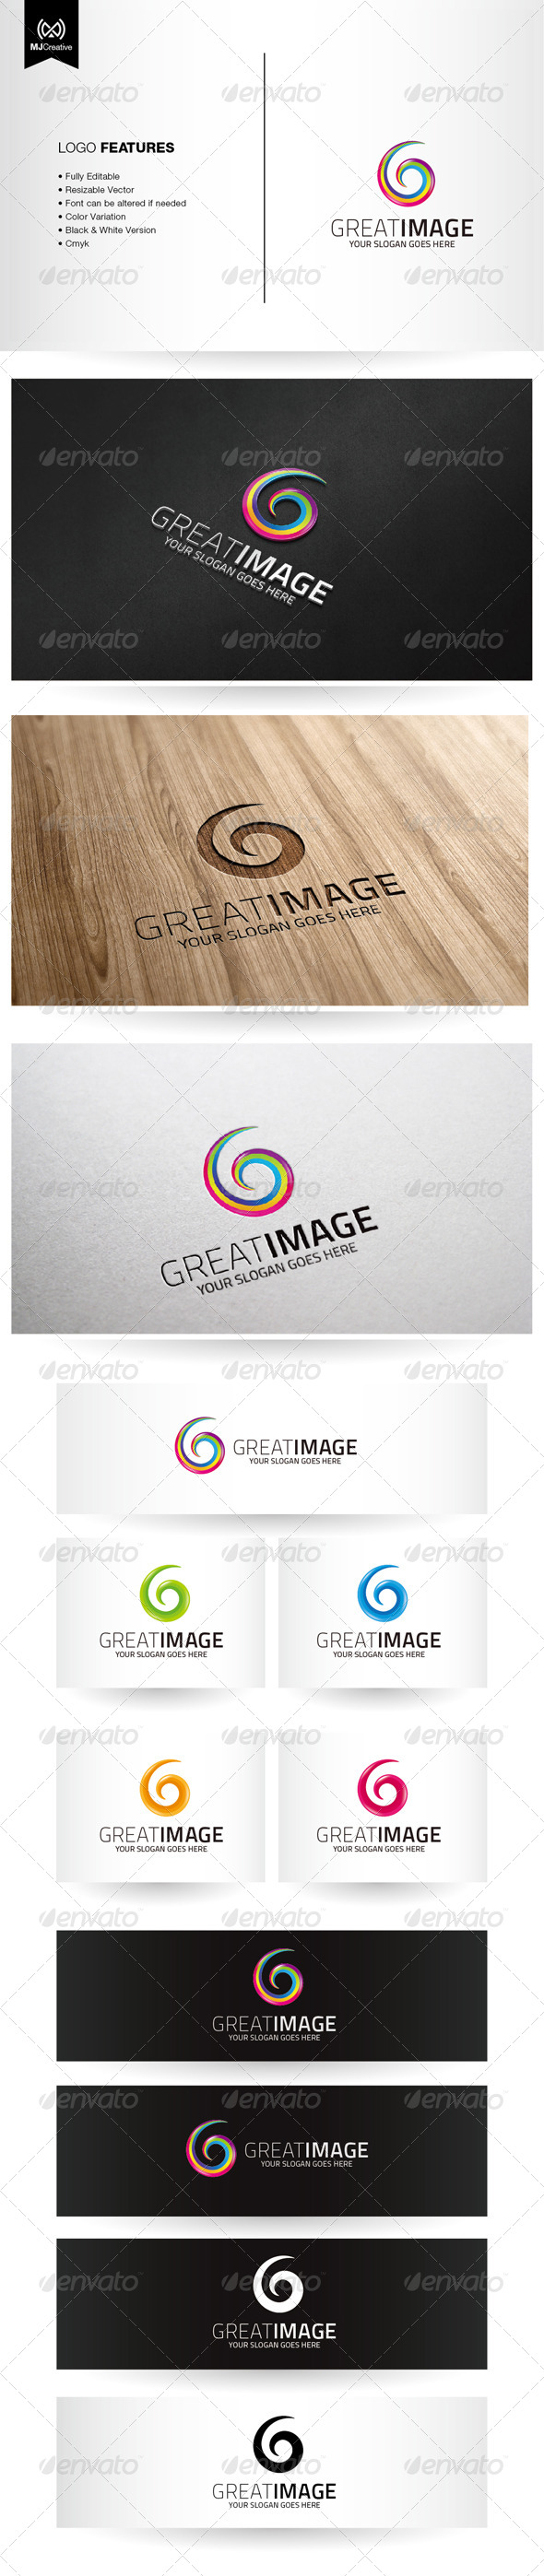 GraphicRiver Spiral Colorful G Logo 6295989